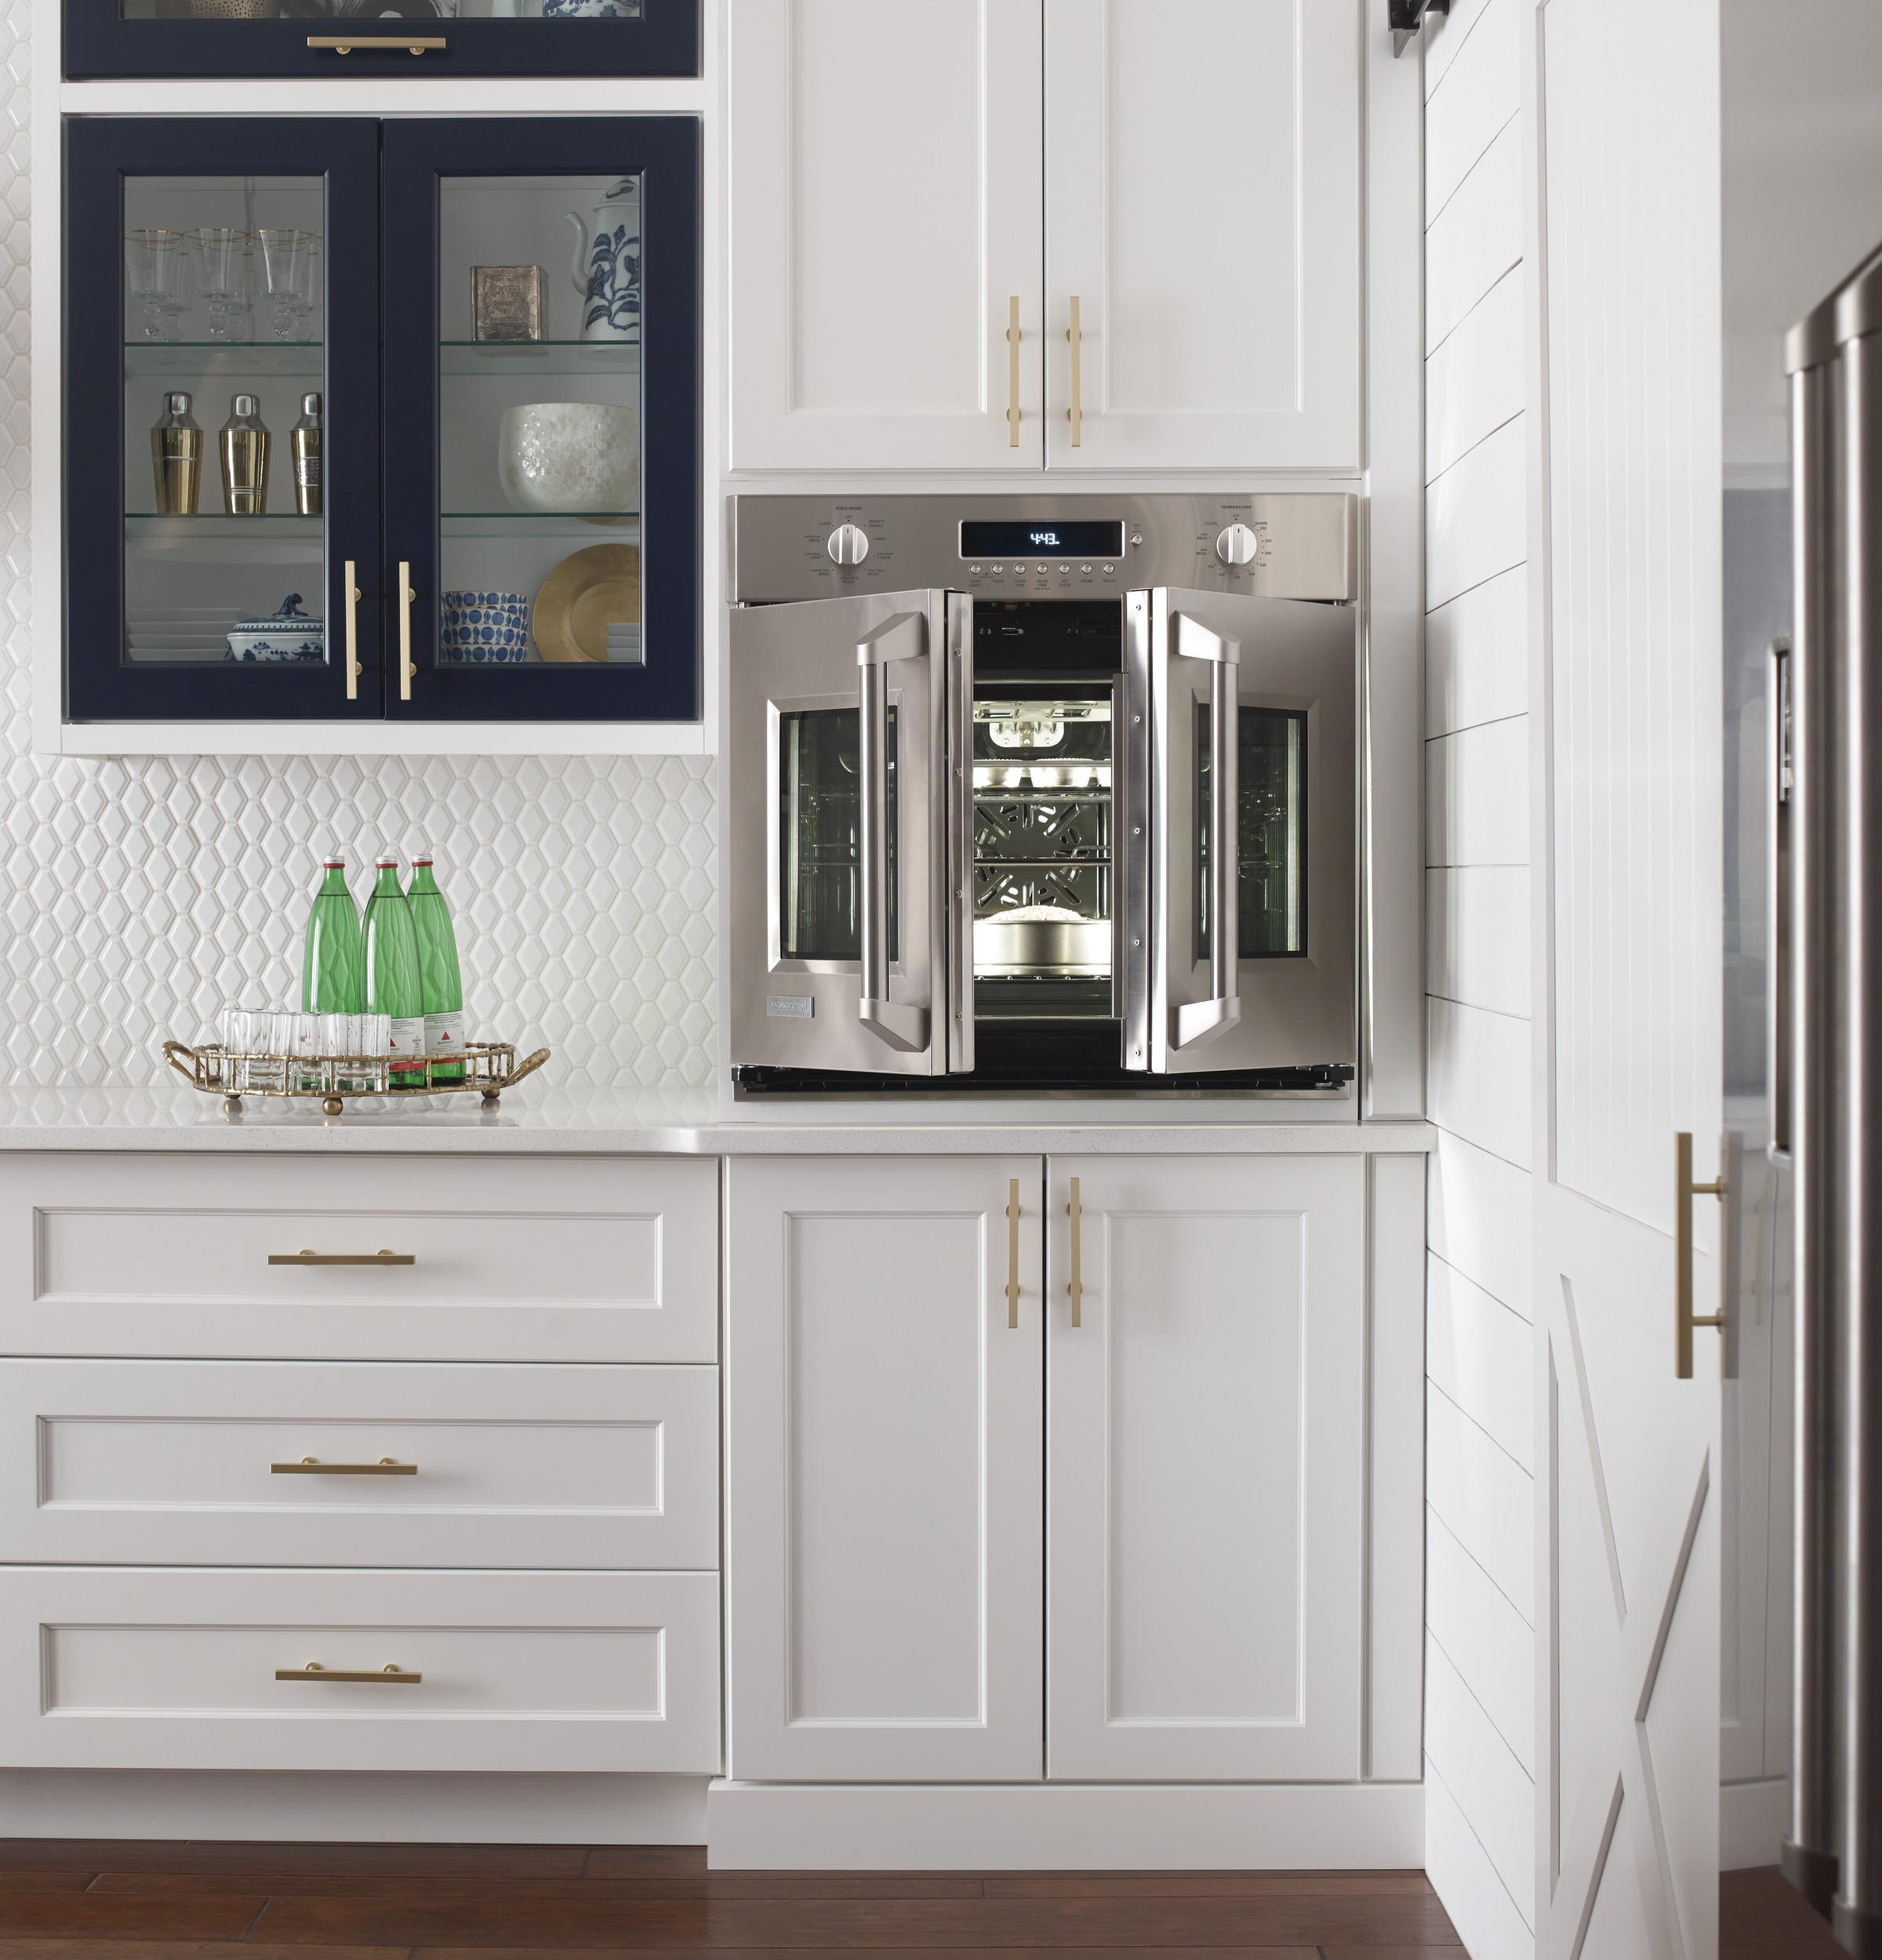 dishwasher single ultimate bar with includes microwave drawer this a pin basement and an island